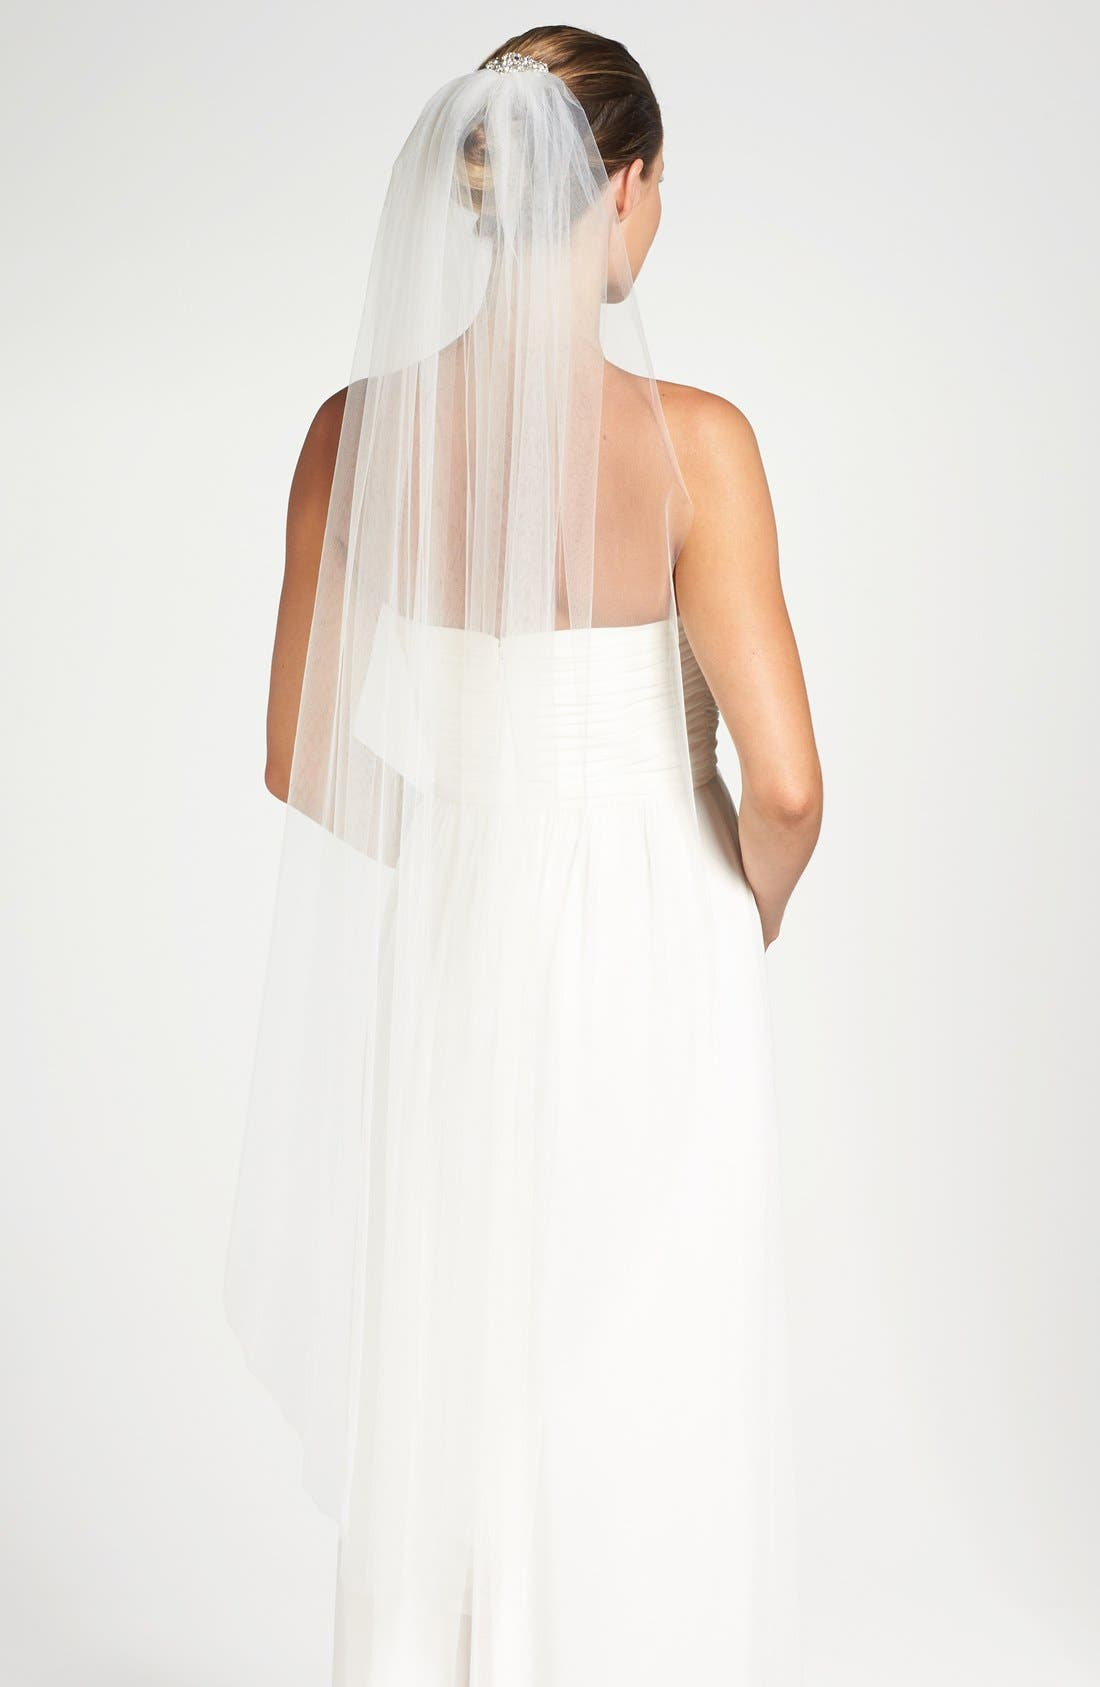 Alternate Image 1 Selected - Toni Federici 'Sugar Pie' Embellished Hair Comb with Waltz Length Veil